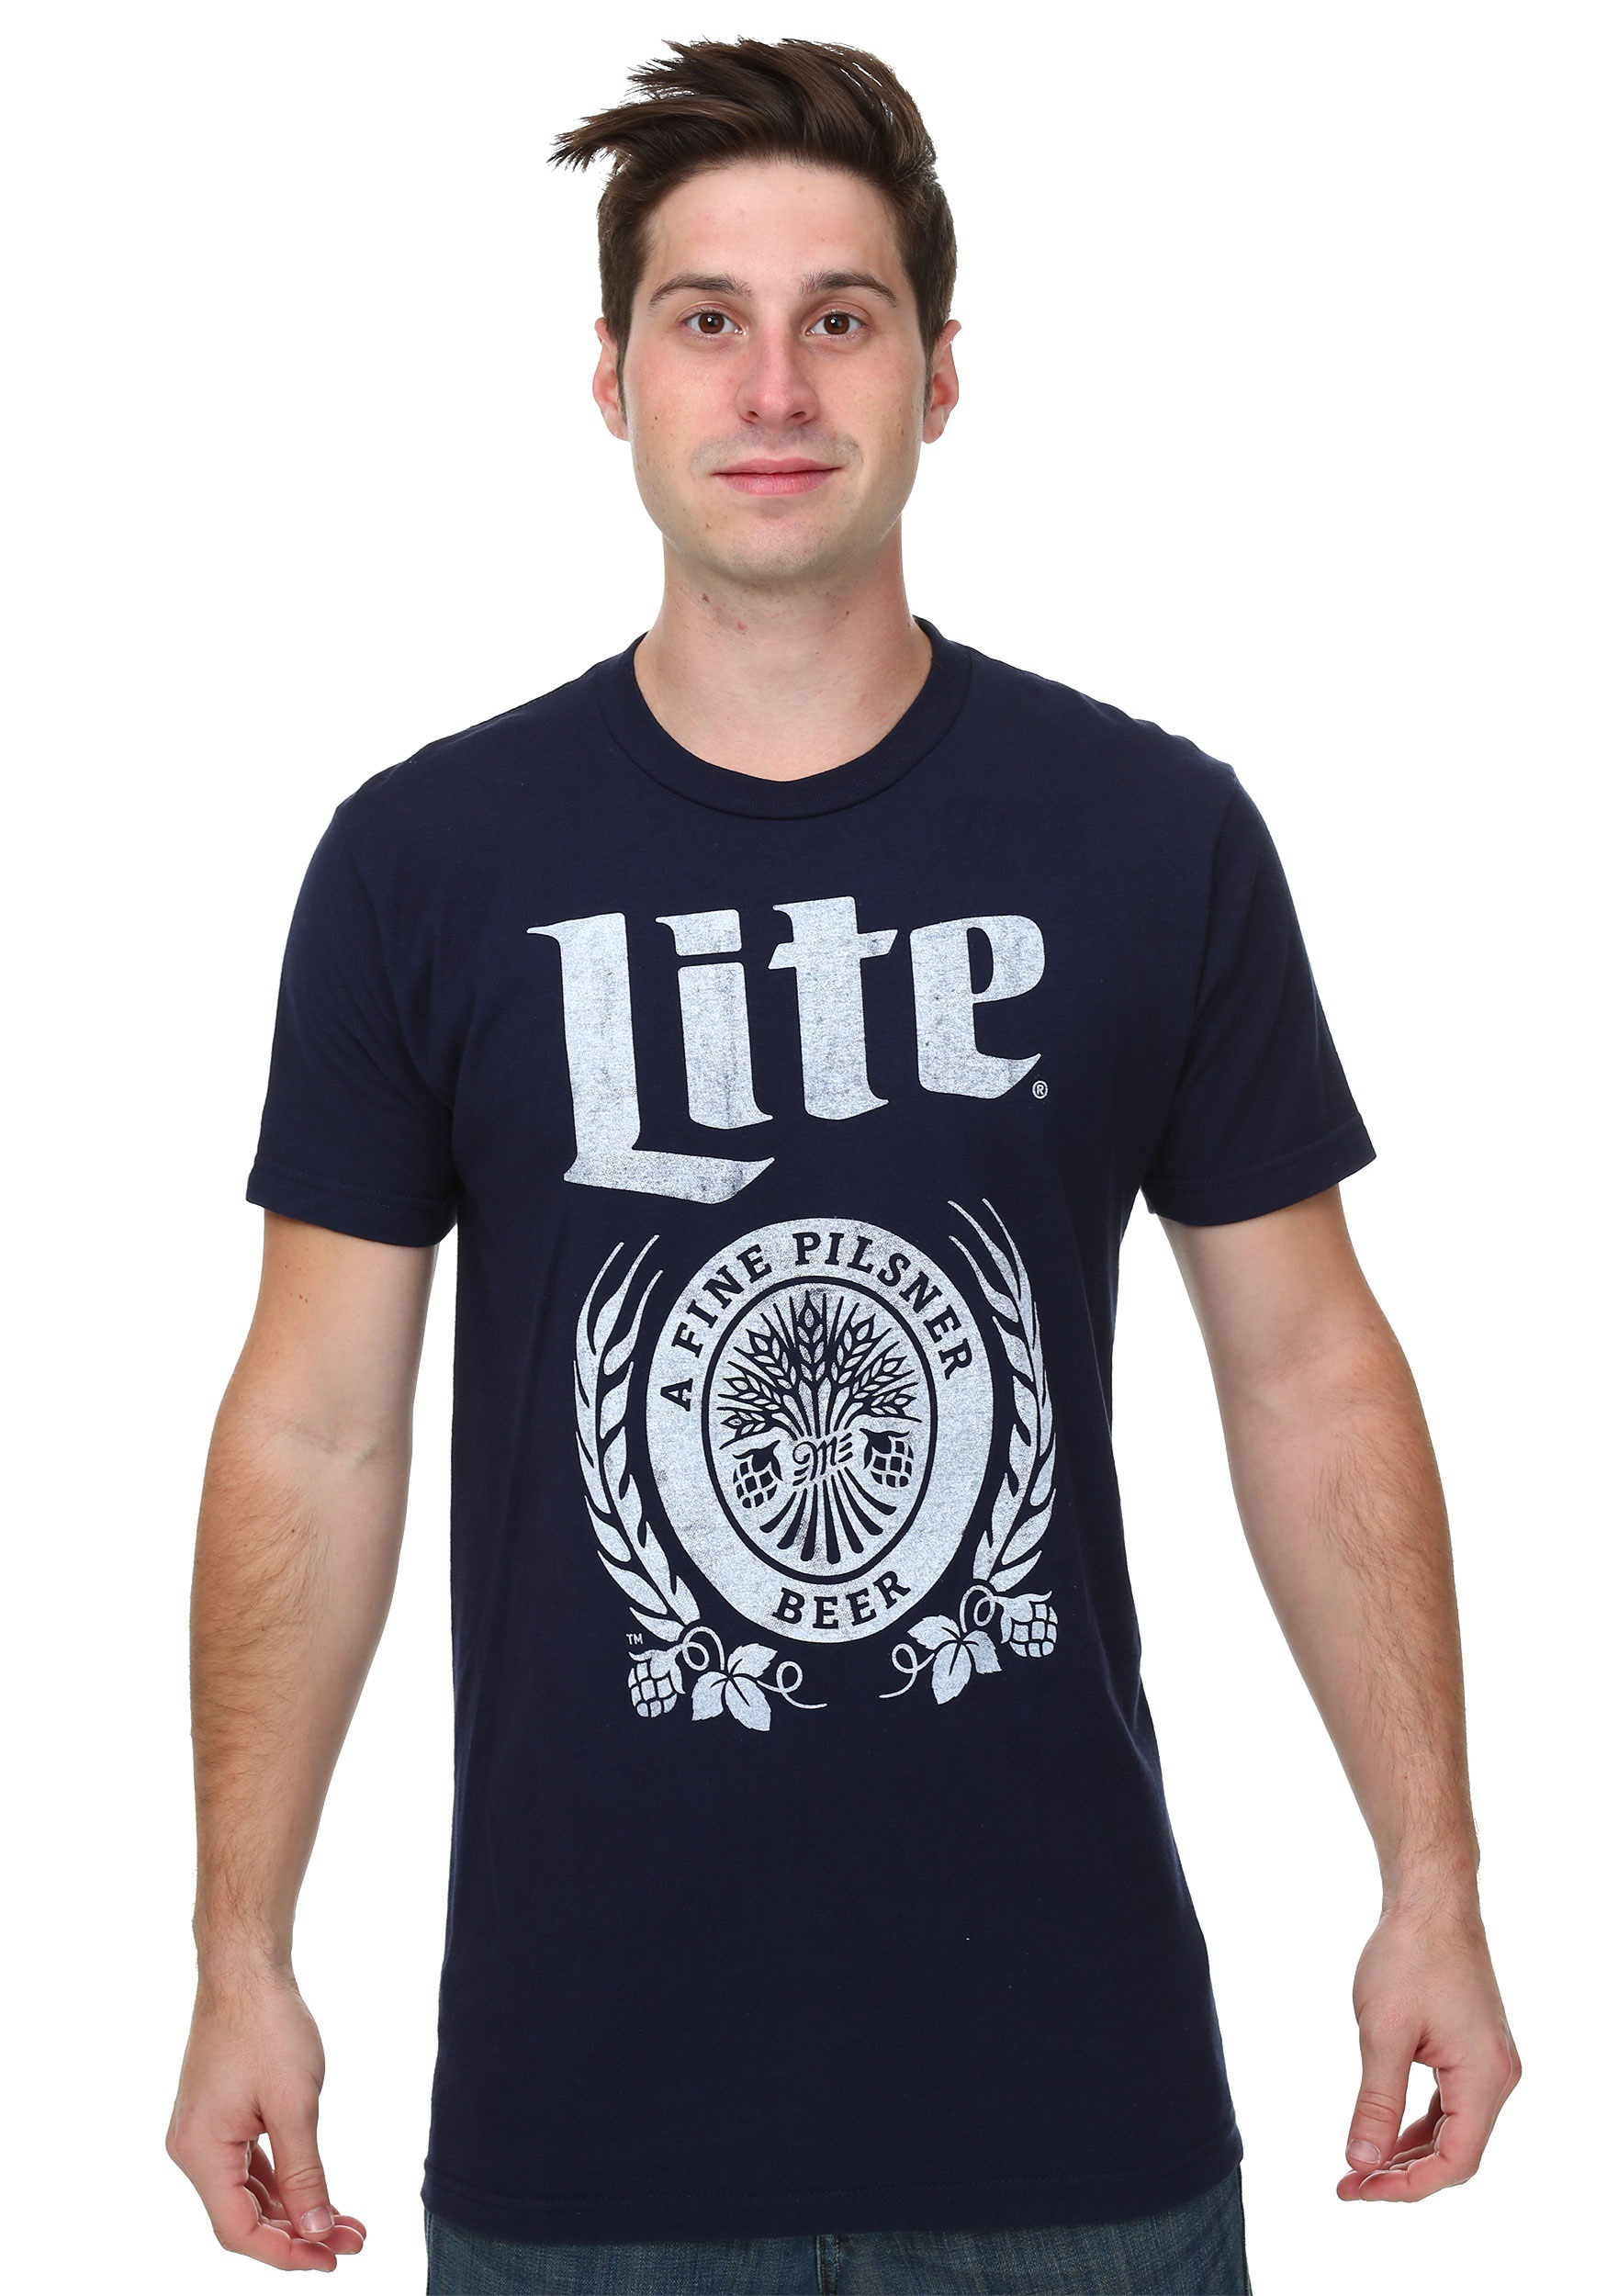 Miller lite vintage logo t shirtt for Old logo t shirts